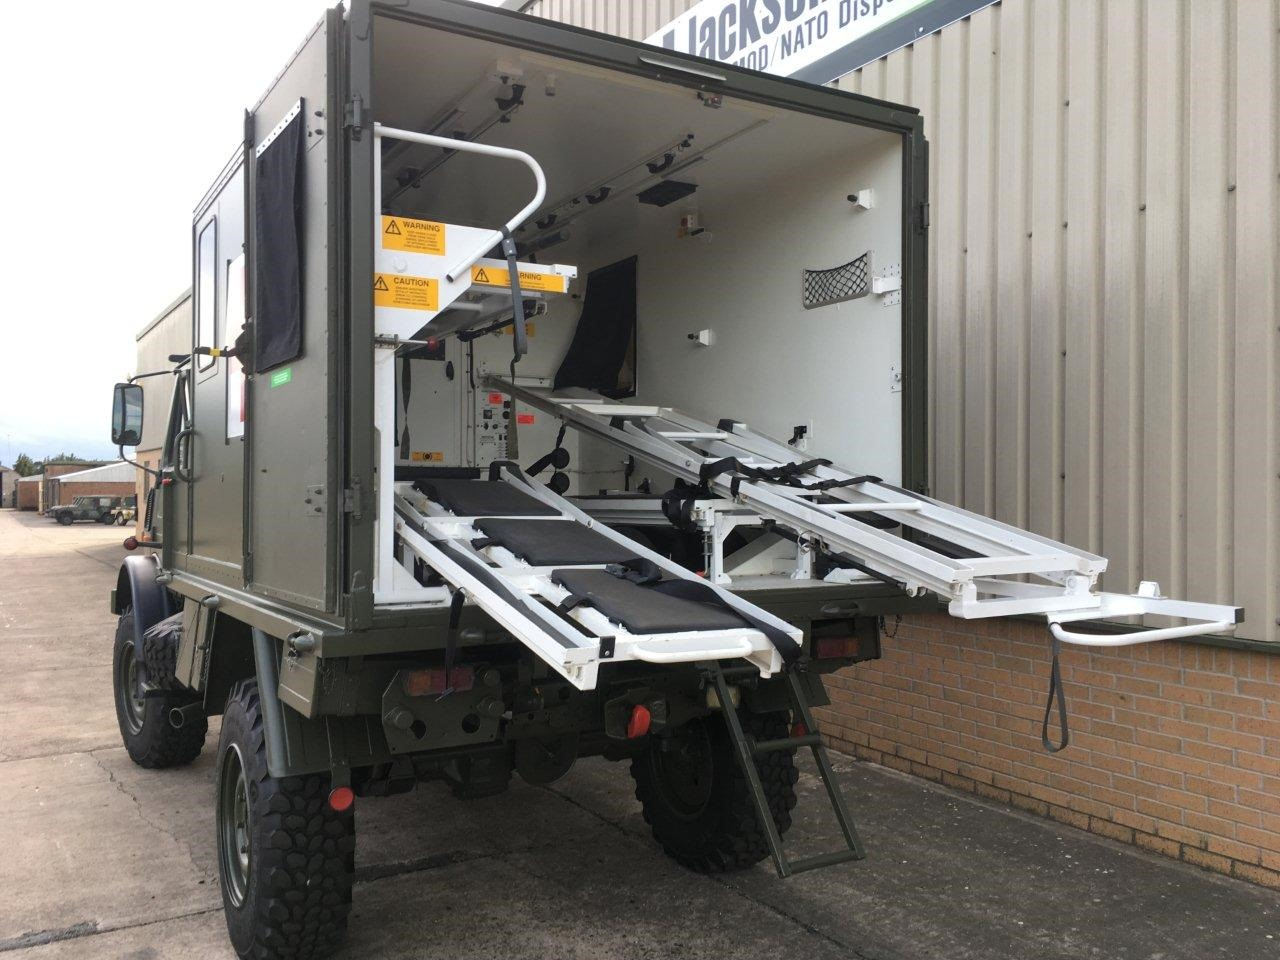 Mercedes Benz Unimog U1300L 4x4 Medical Ambulance for sale | for sale in Angola, Kenya,  Nigeria, Tanzania, Mozambique, South Africa, Zambia, Ghana- Sale In  Africa and the Middle East